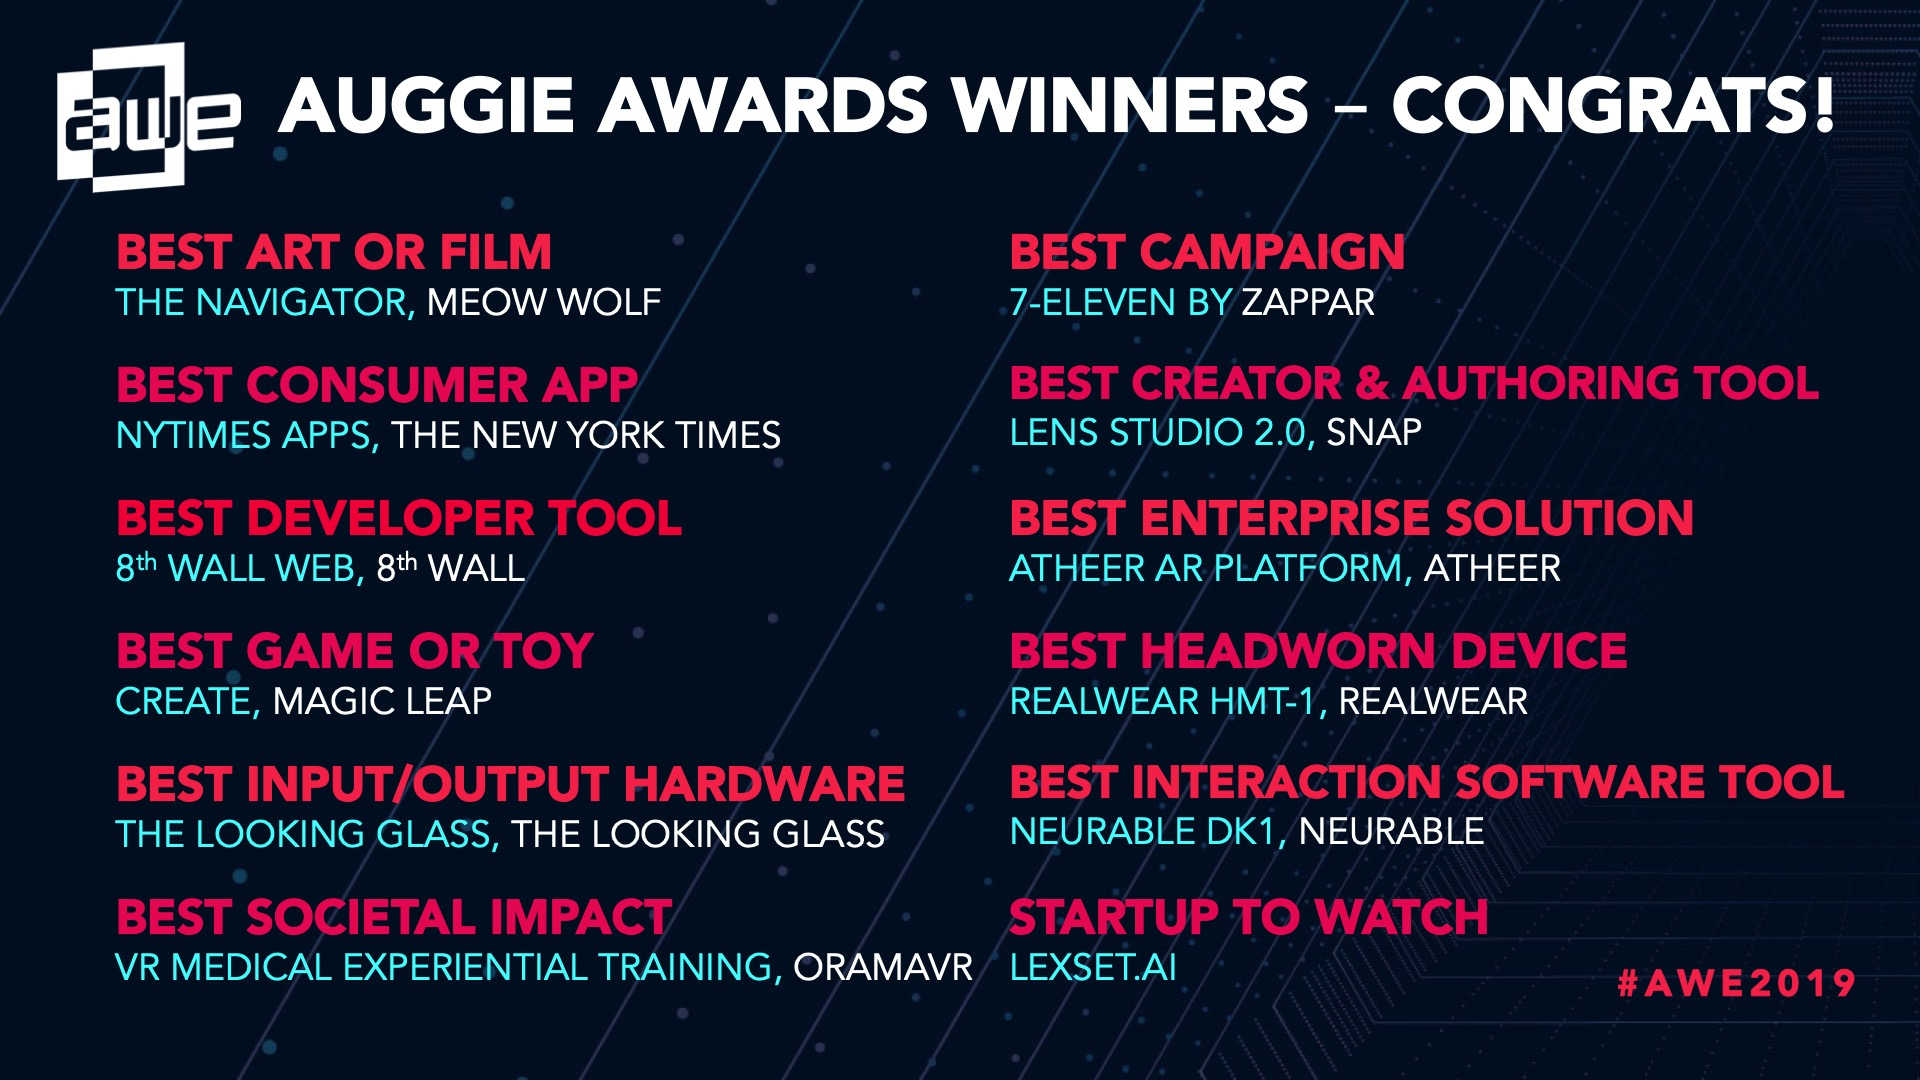 AWE - Announcing the AWE 2019 Tenth Annual Auggie Award